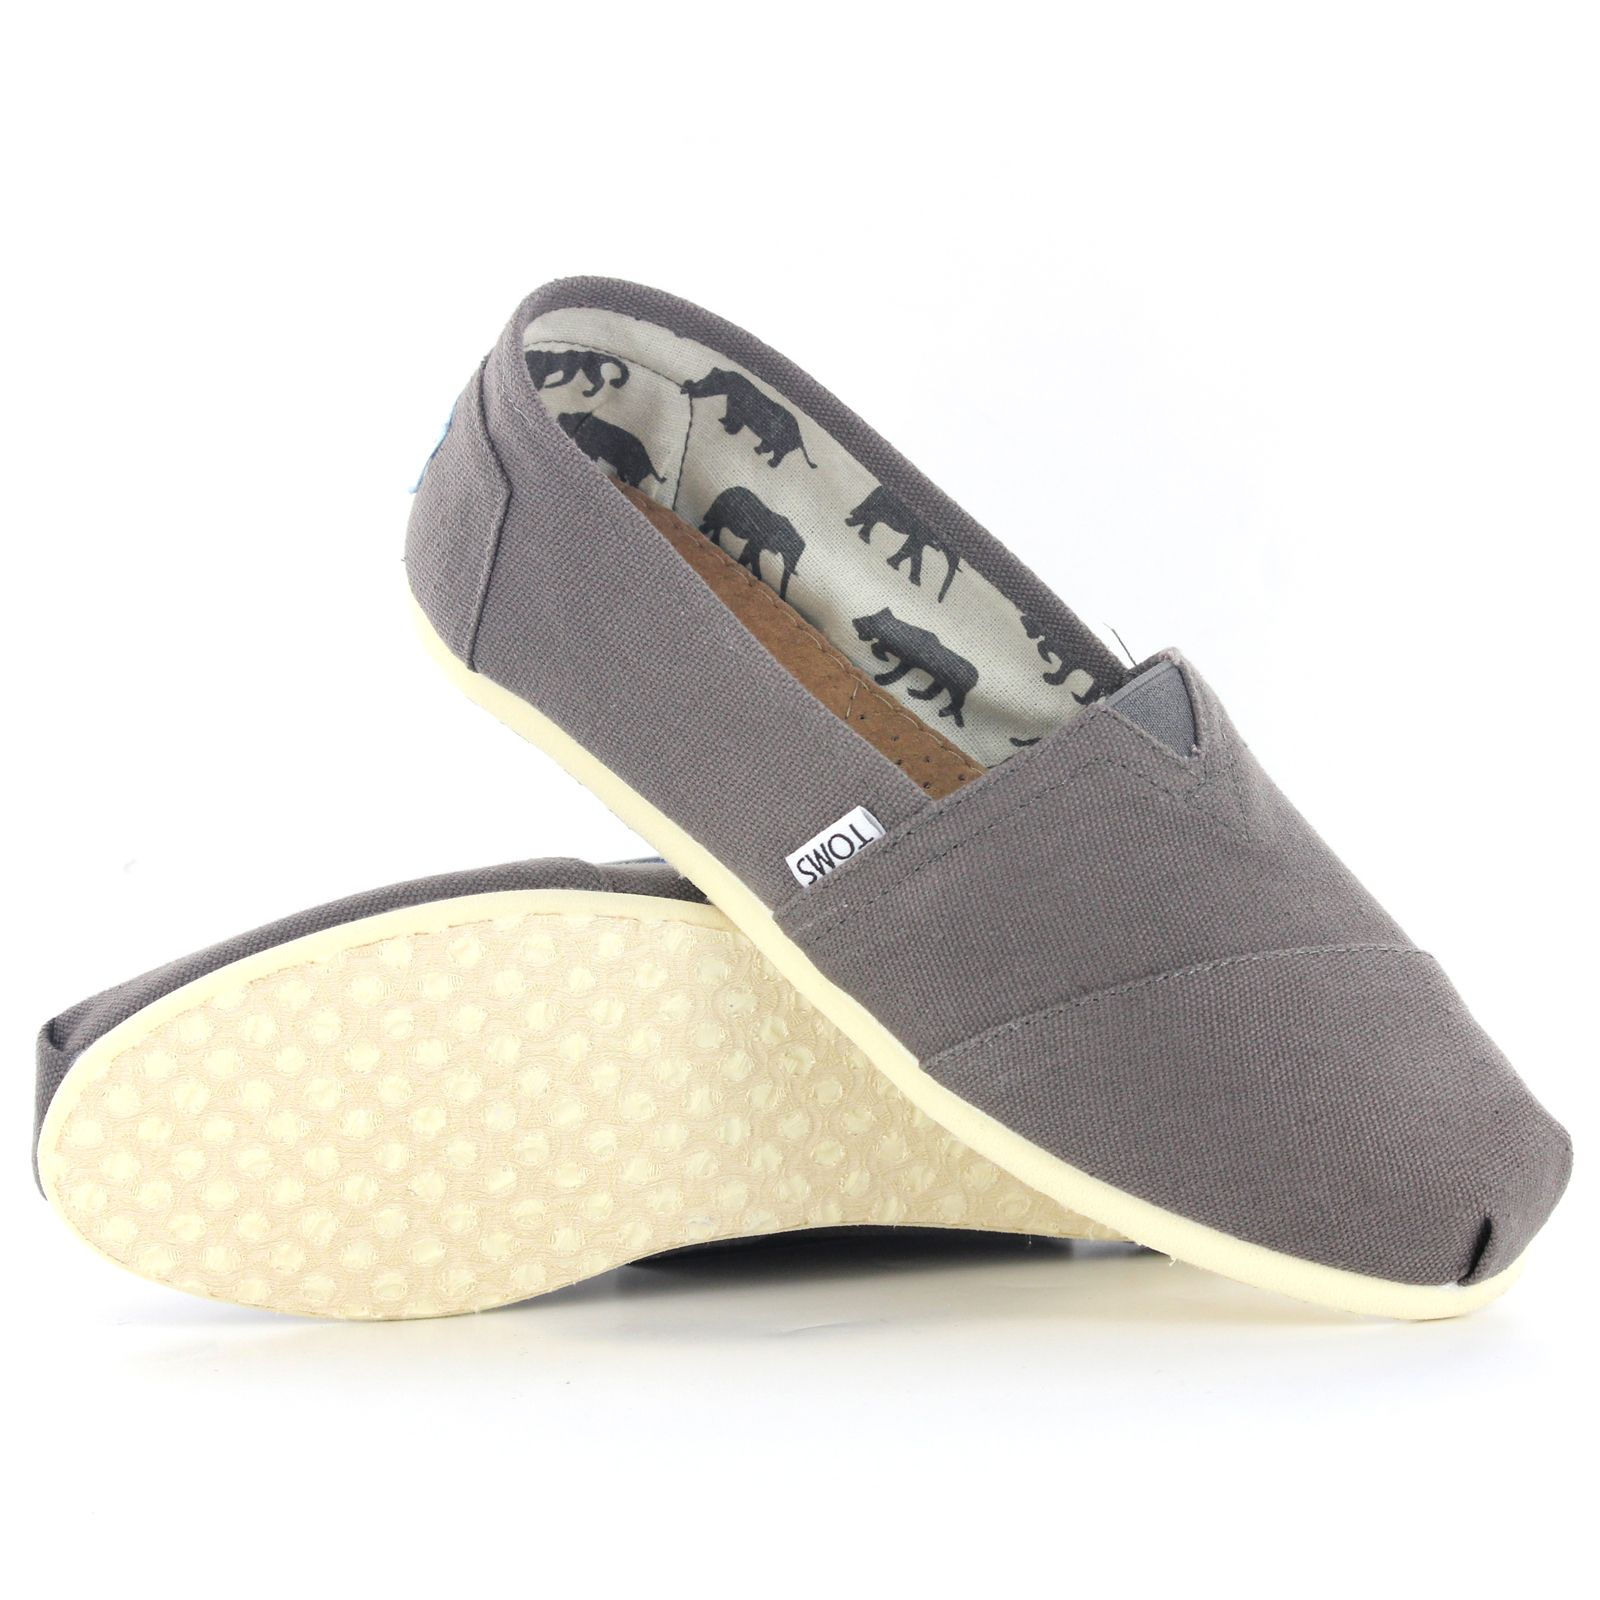 4b6bacc7bc1 8 Comfy Toms Shoes | Styles I Love: for my Stylist | Cheap toms ...